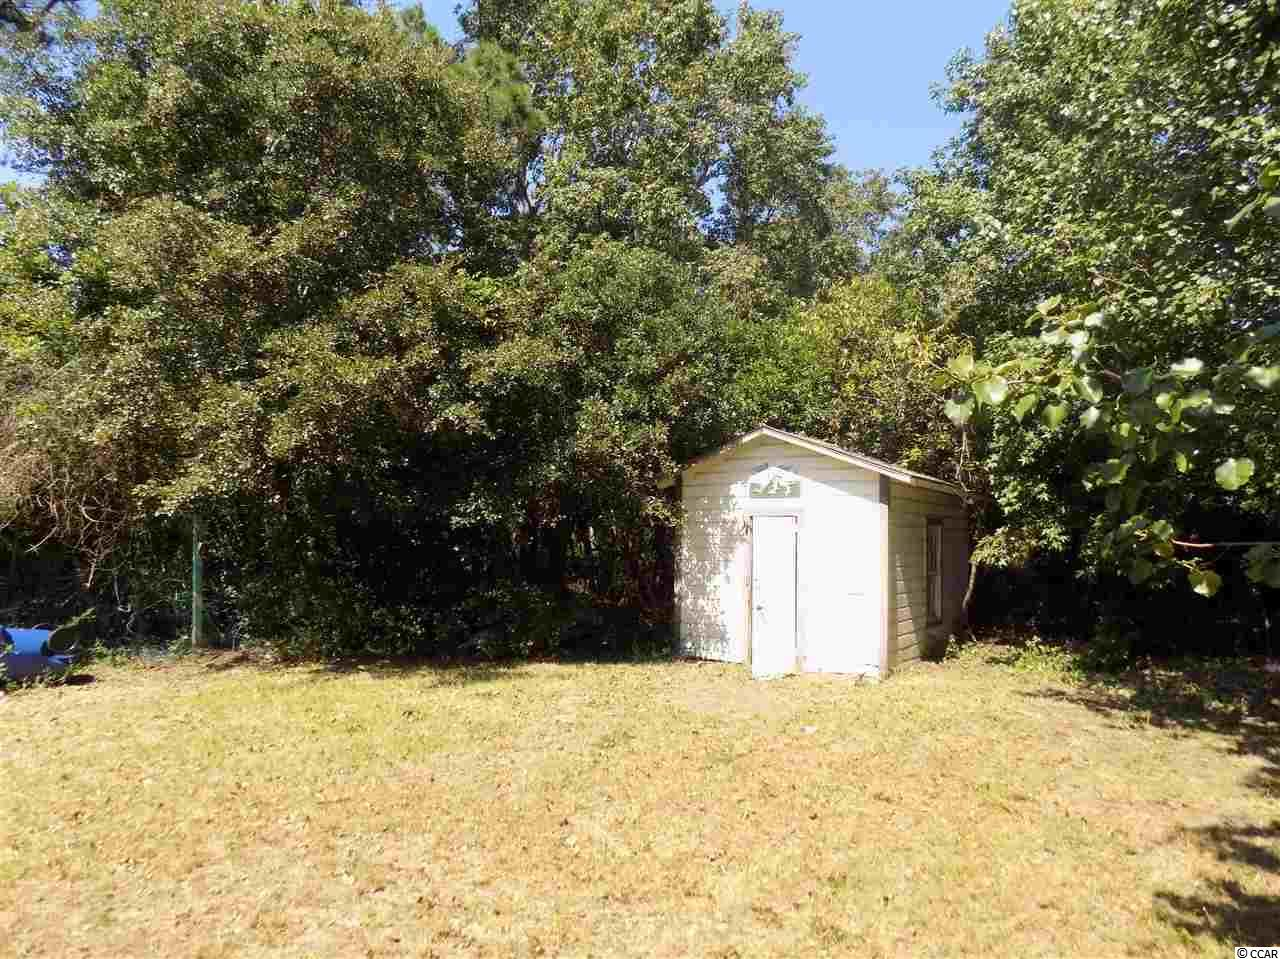 Not within a Subdivision  house now for sale